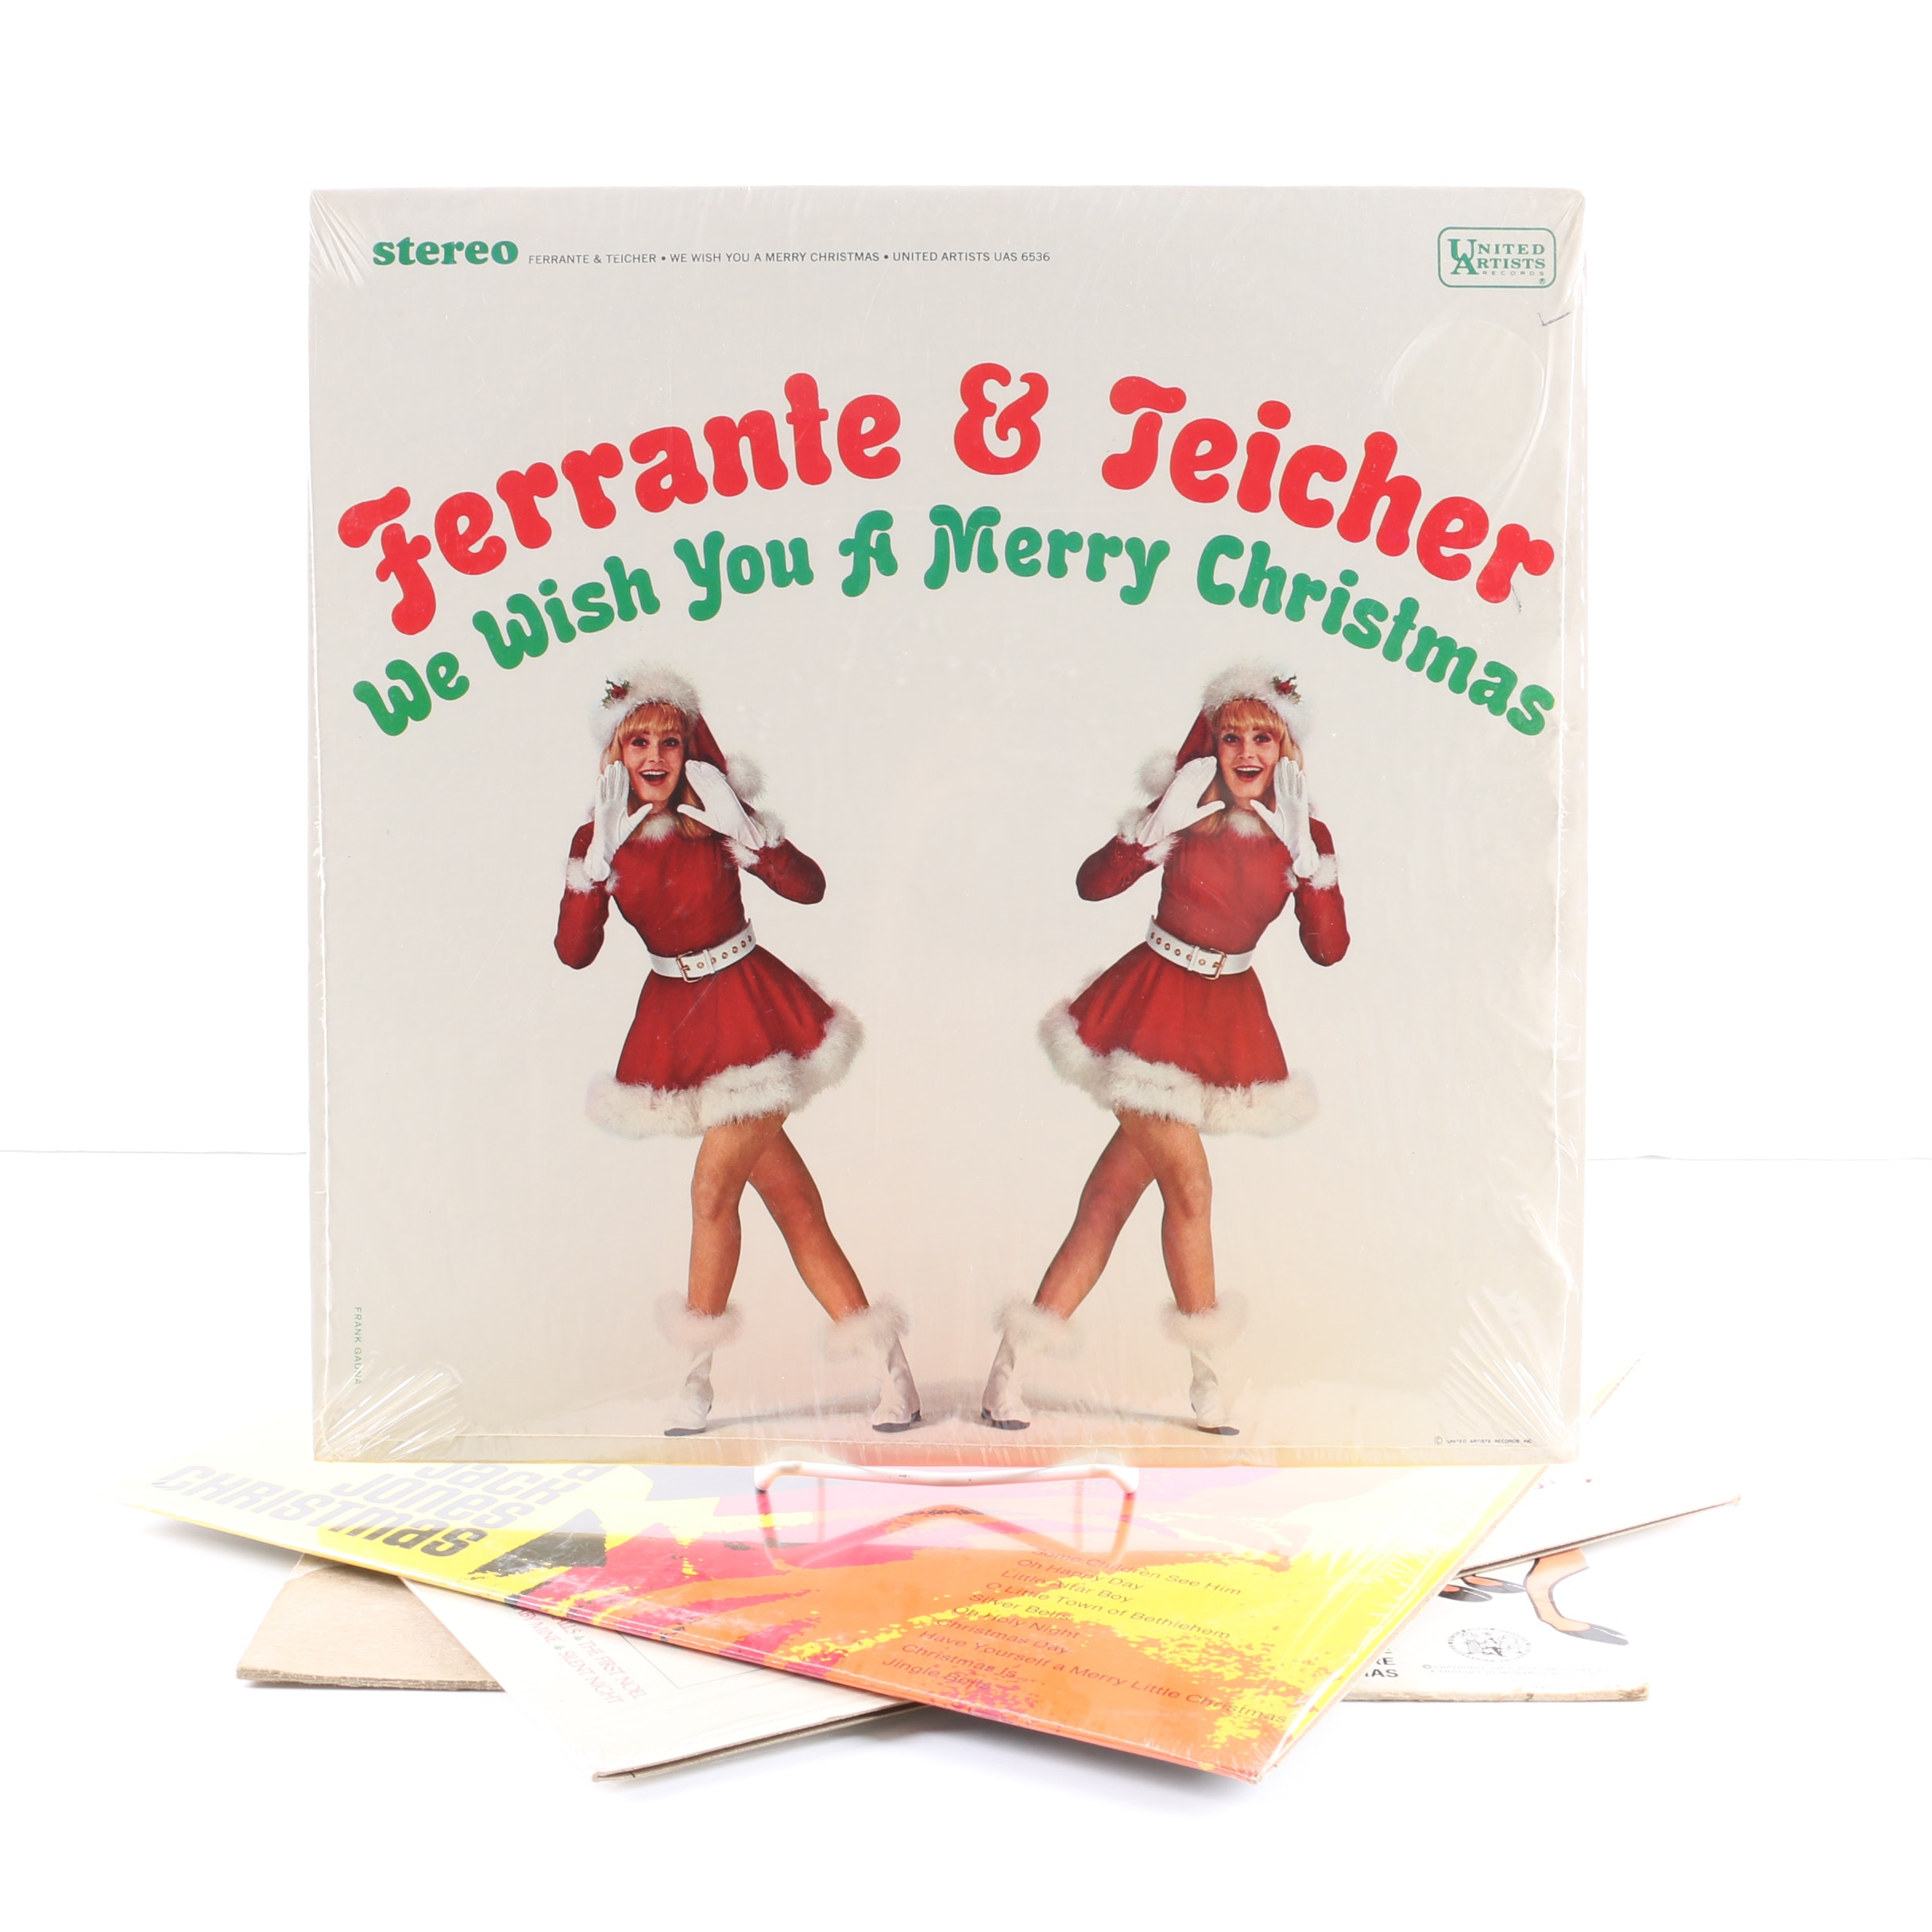 Ferrante & Teicher, Billy Vaughn, and More Christmas LPs